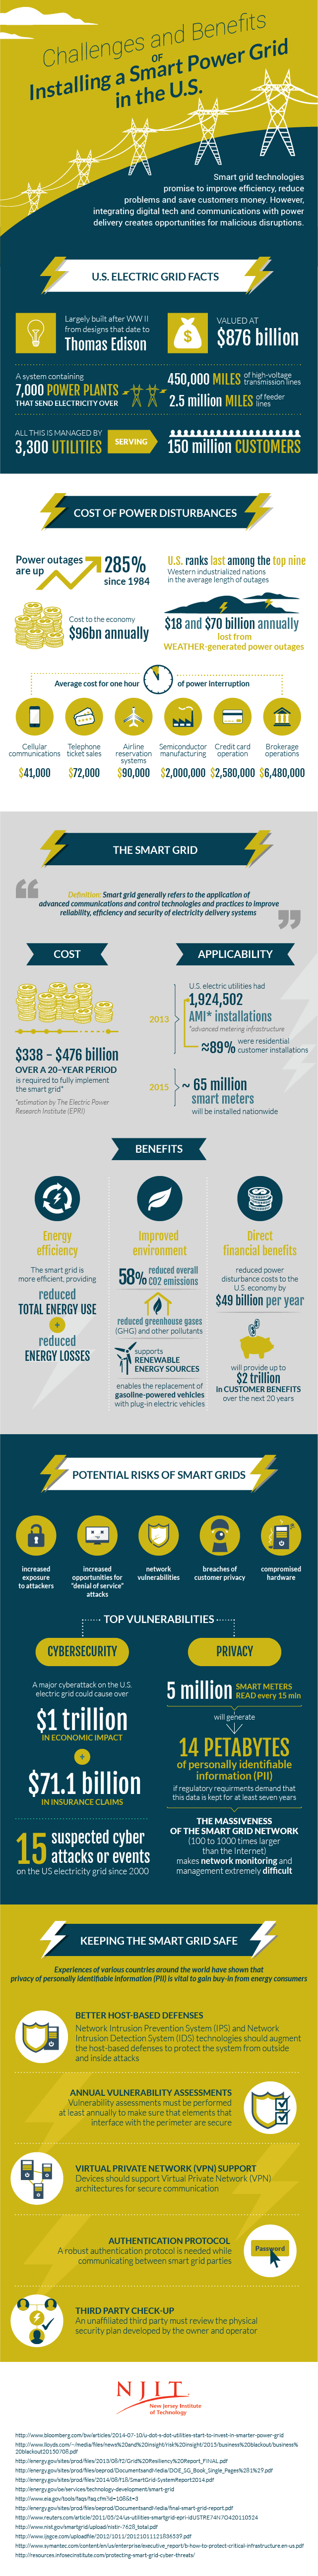 Challenges And Benefits of Installing a Smart Power Grid in the US #Infographic